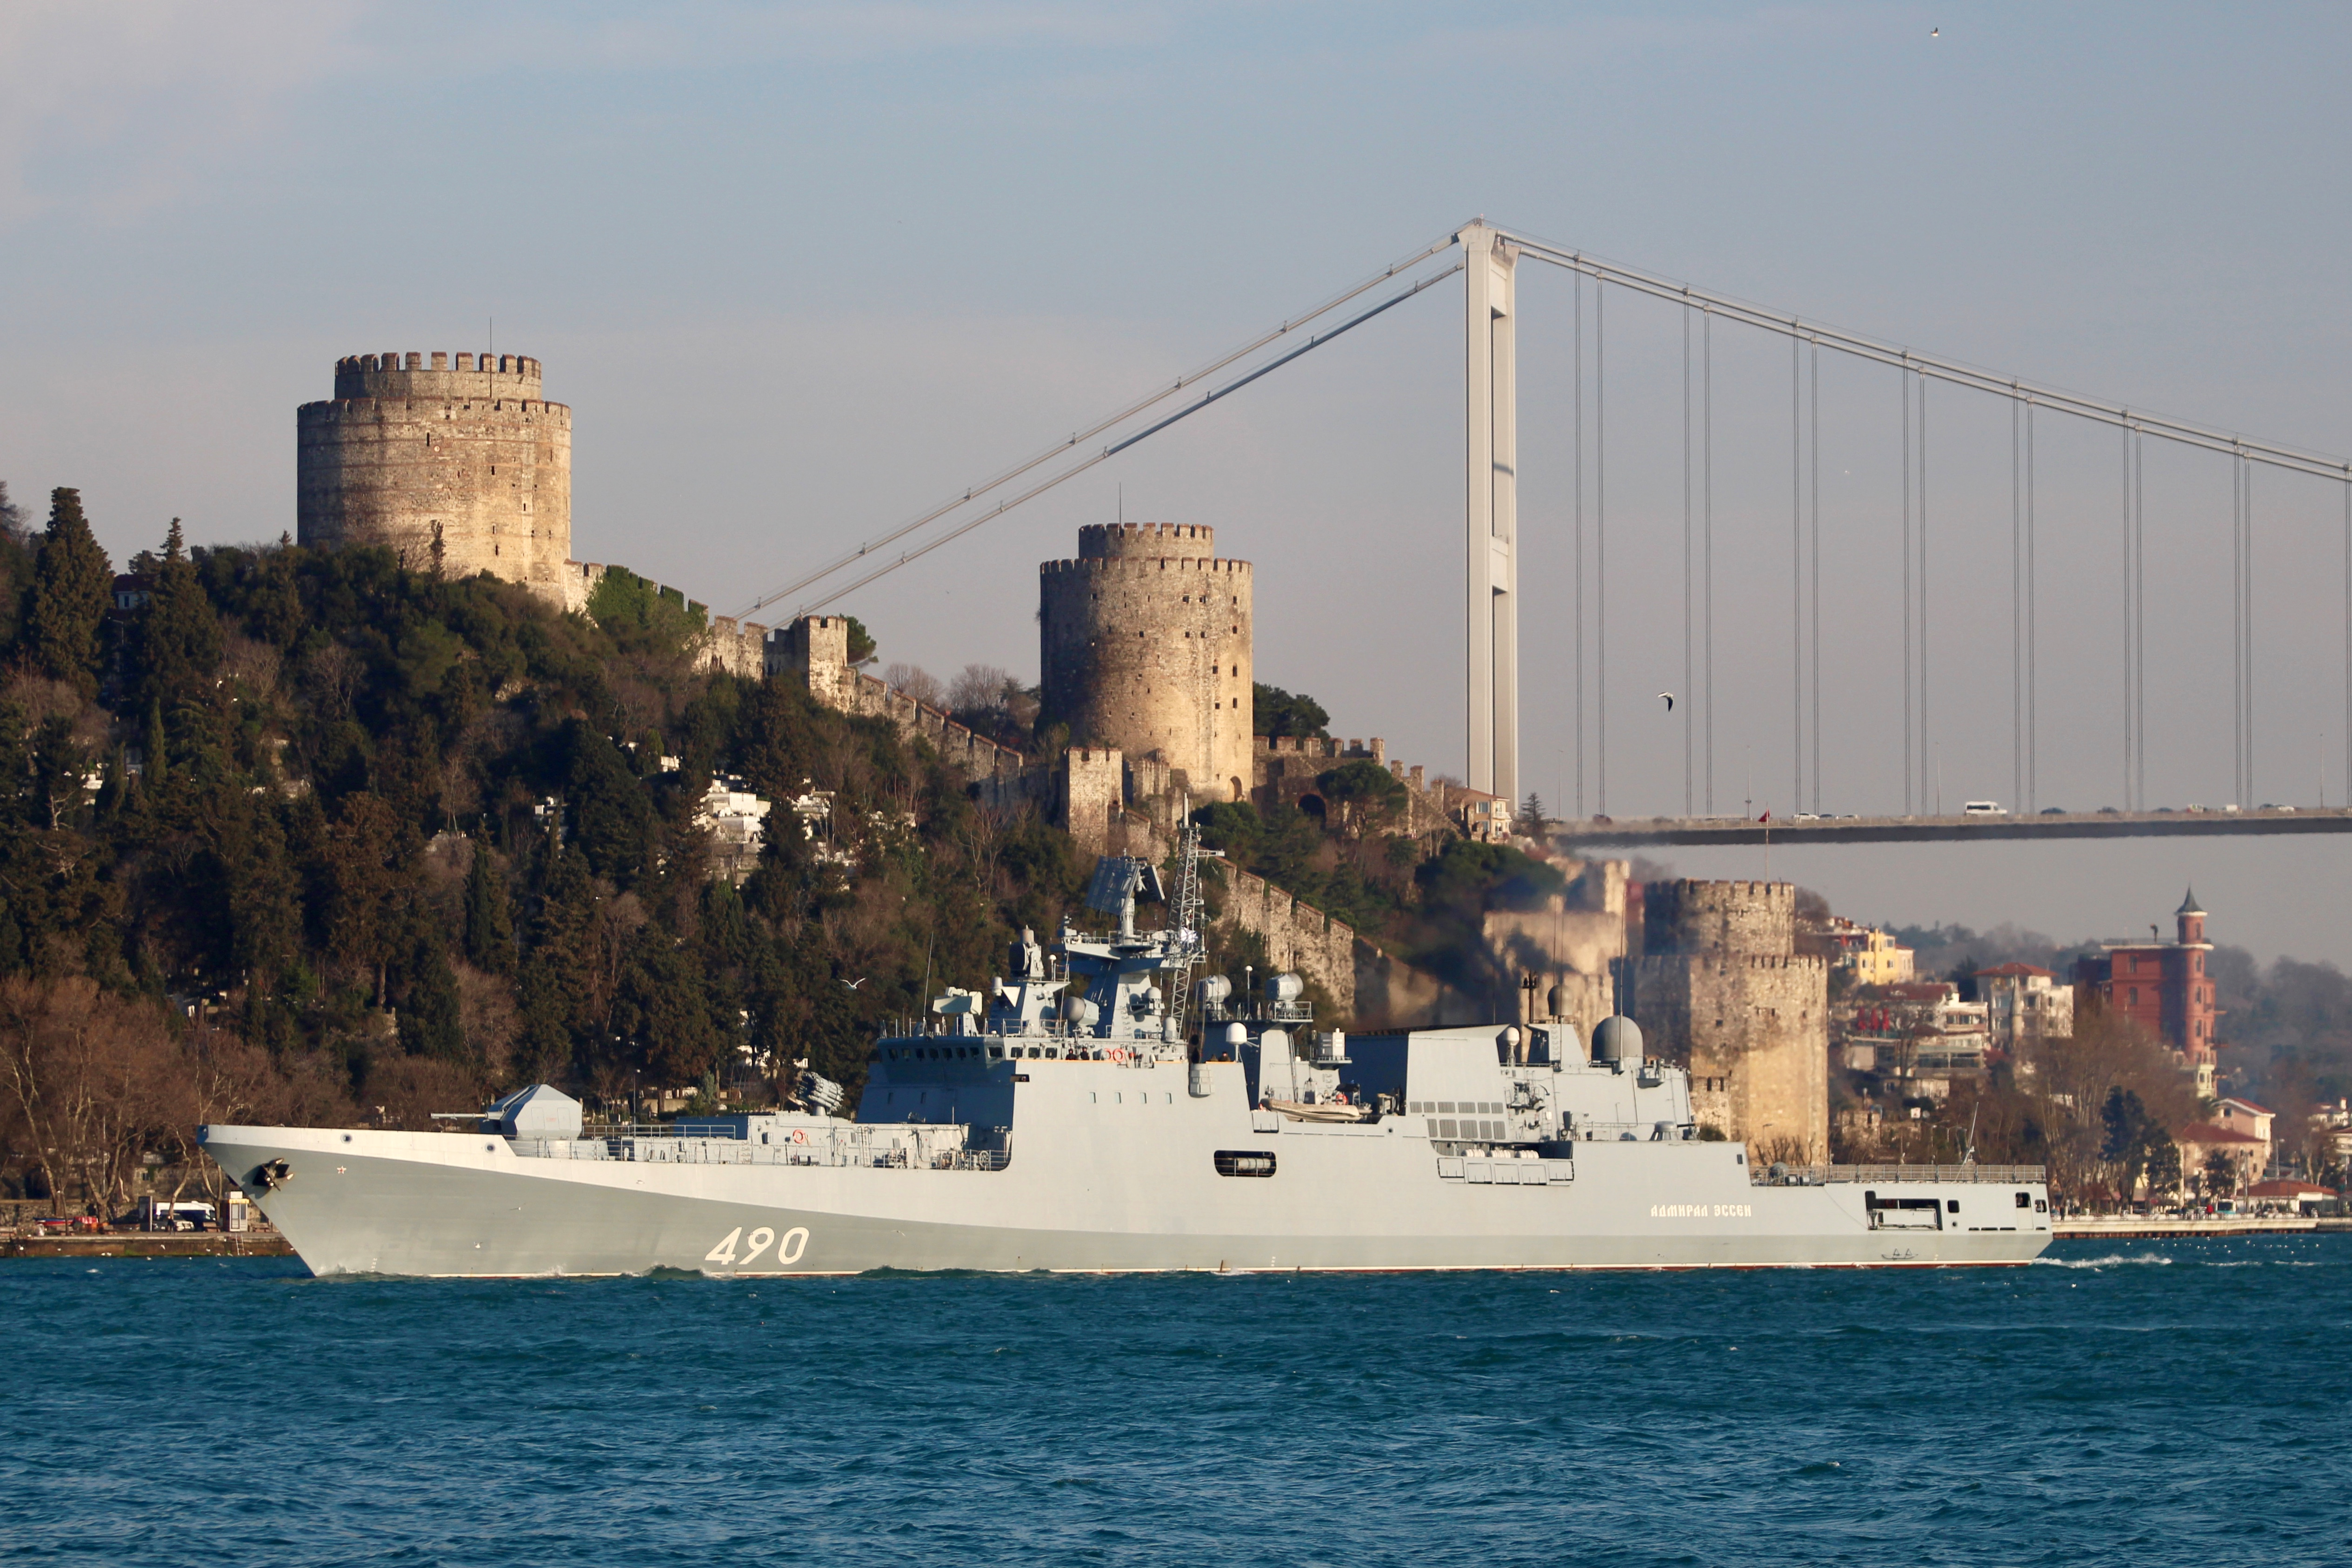 The Russian Navy's frigate Admiral Essen sets sail in the Bosphorus, on its way to the Mediterranean Sea, in Istanbul, Turkey March 1, 2019.